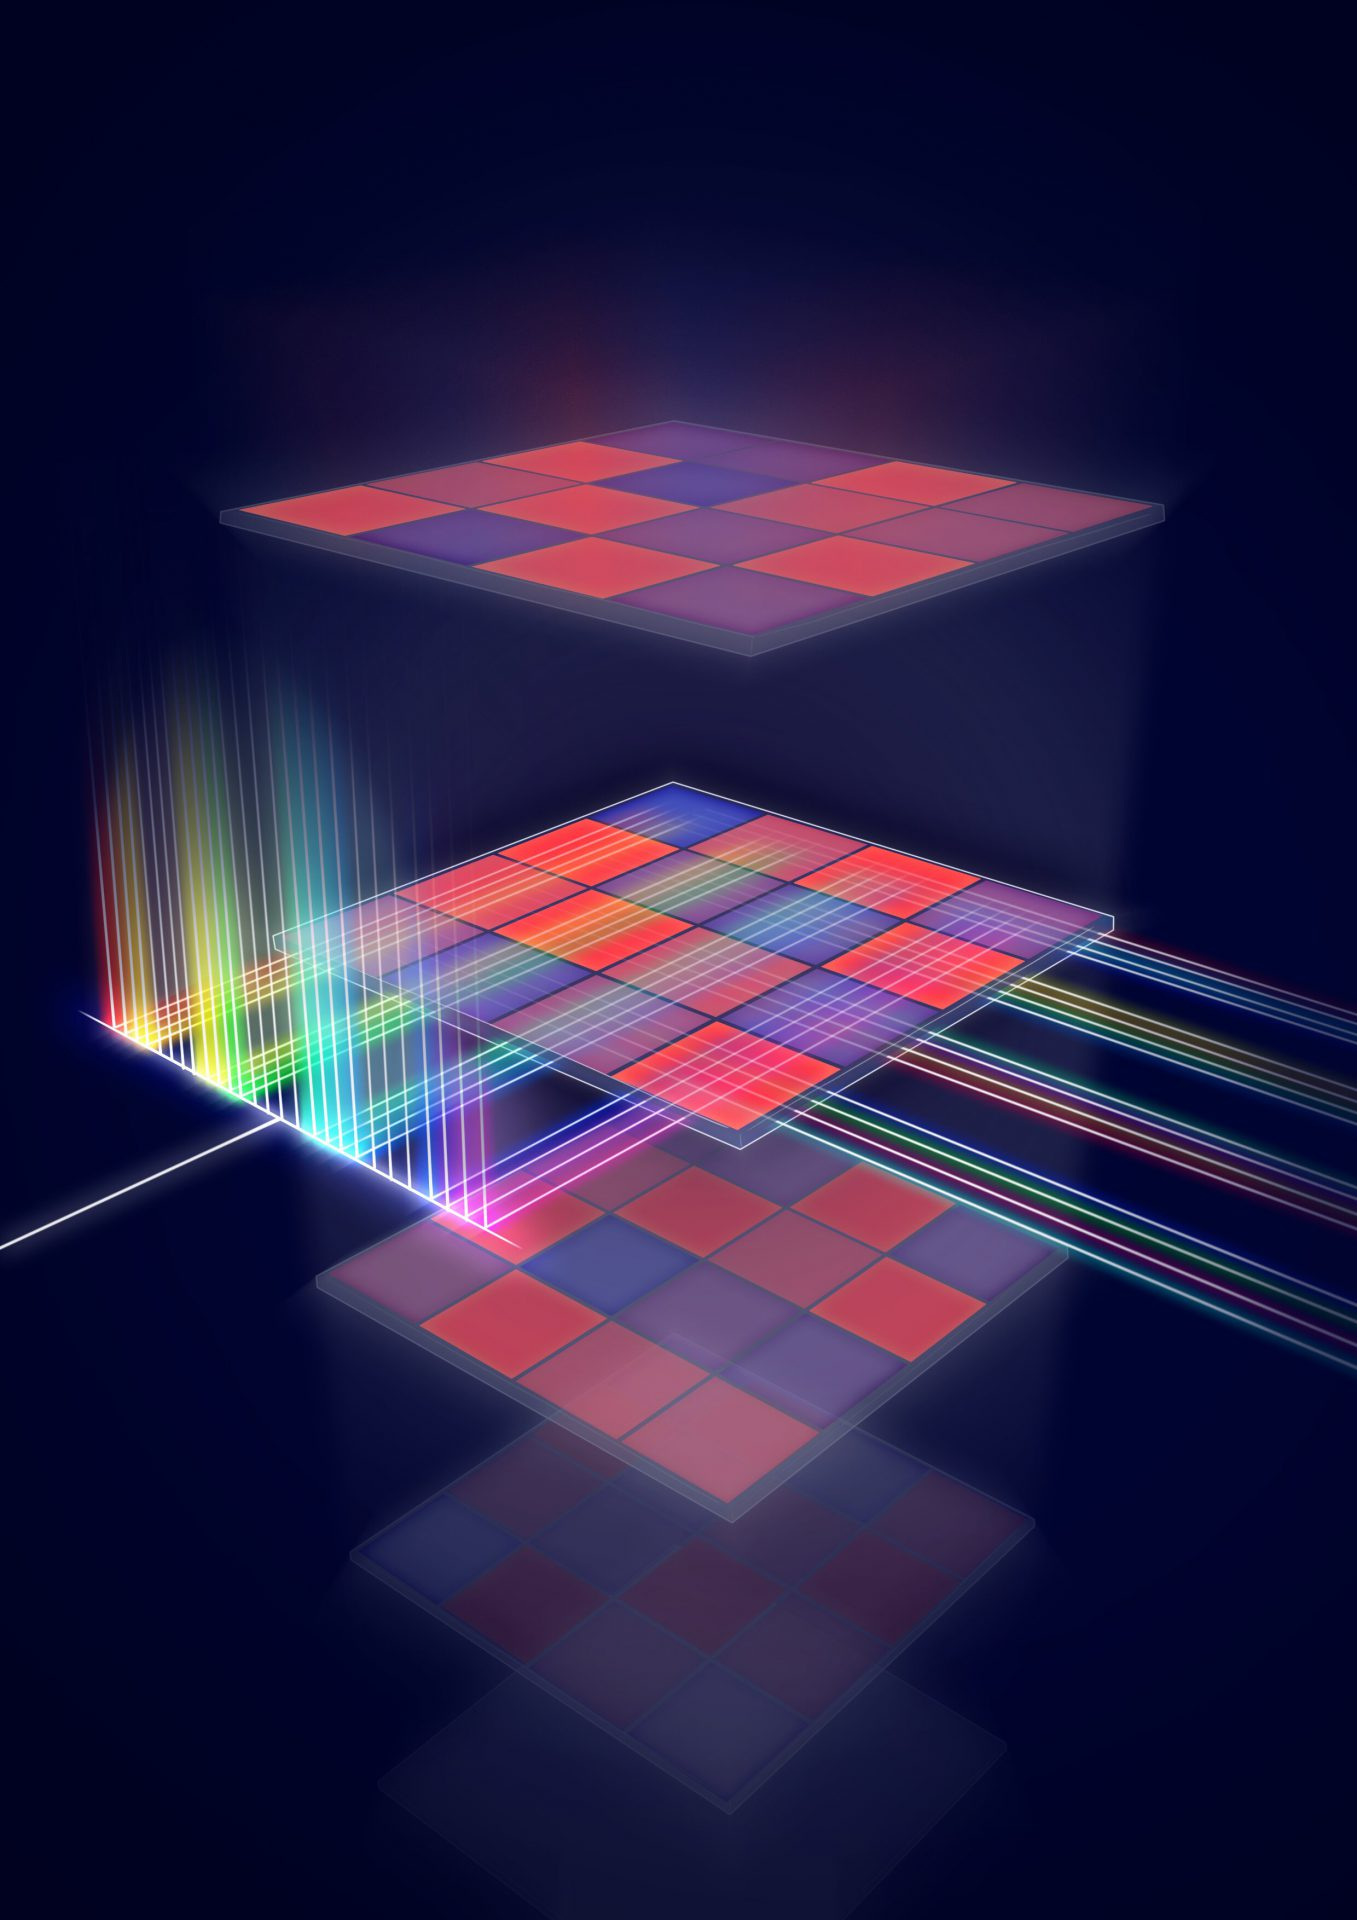 Schematic representation of a processor for matrix multiplications that runs on light. Credit: University of Oxford